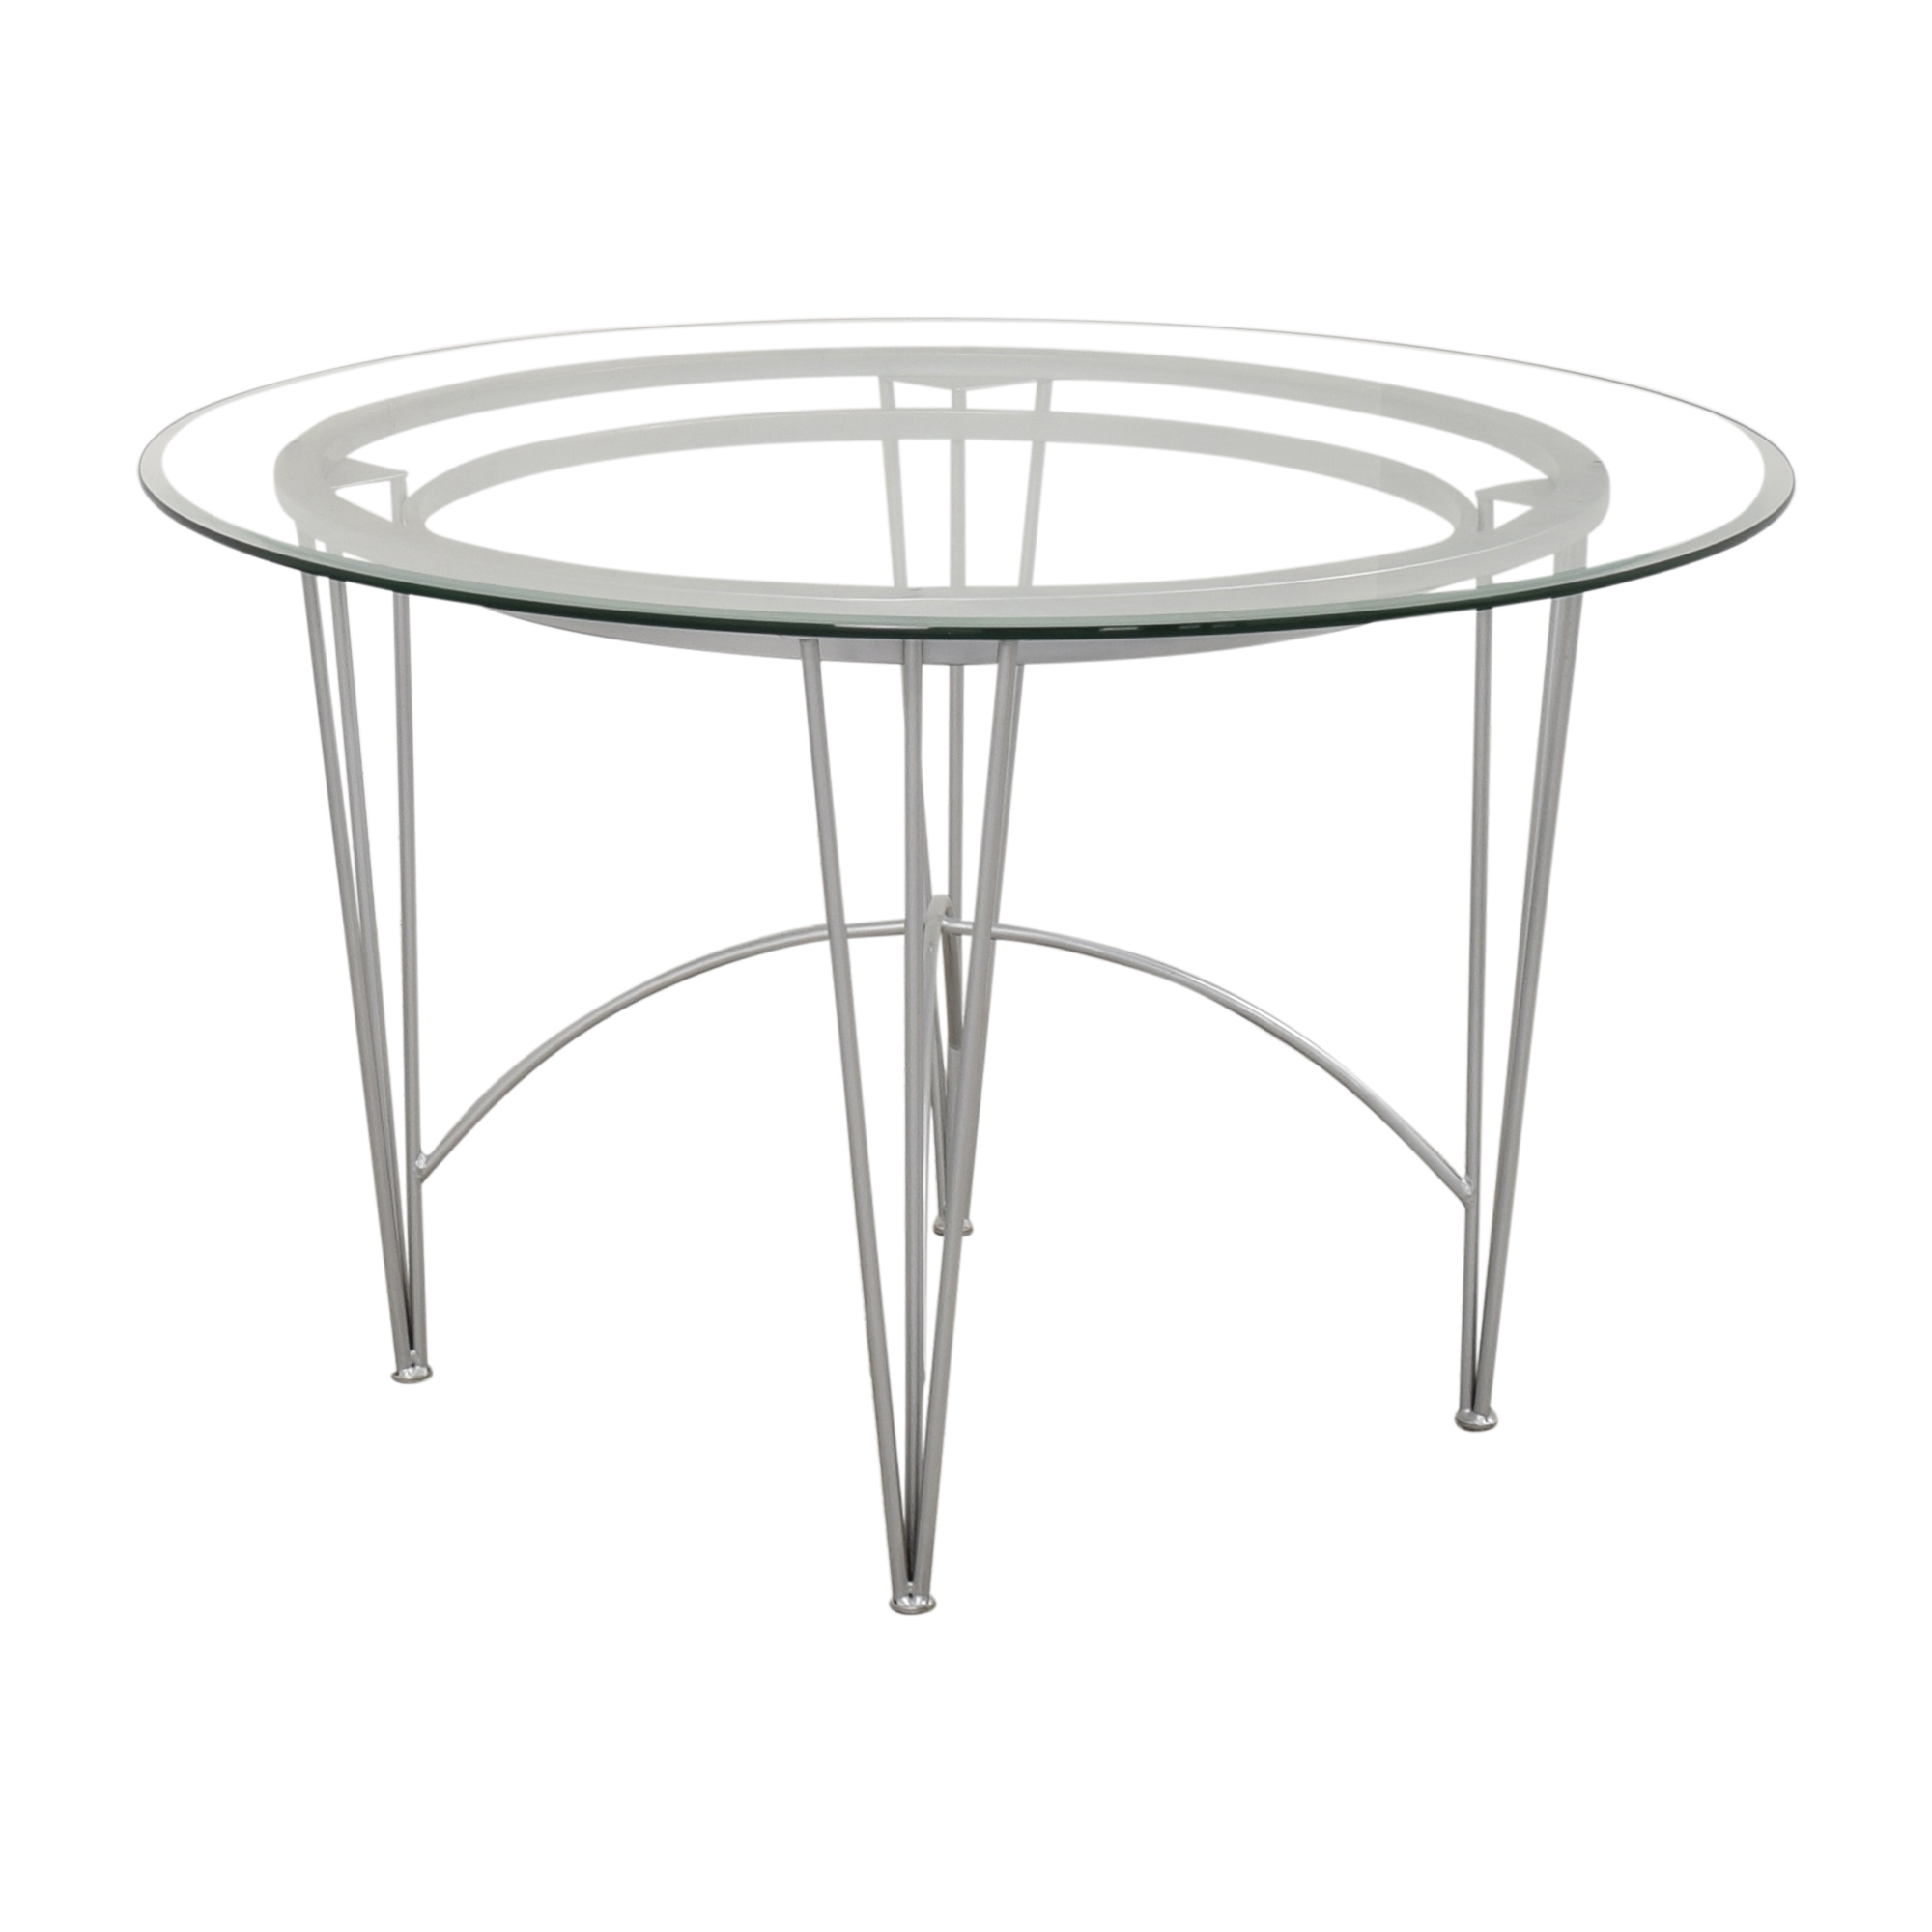 Round Glass Top Dining Table with Hairpin Legs discount